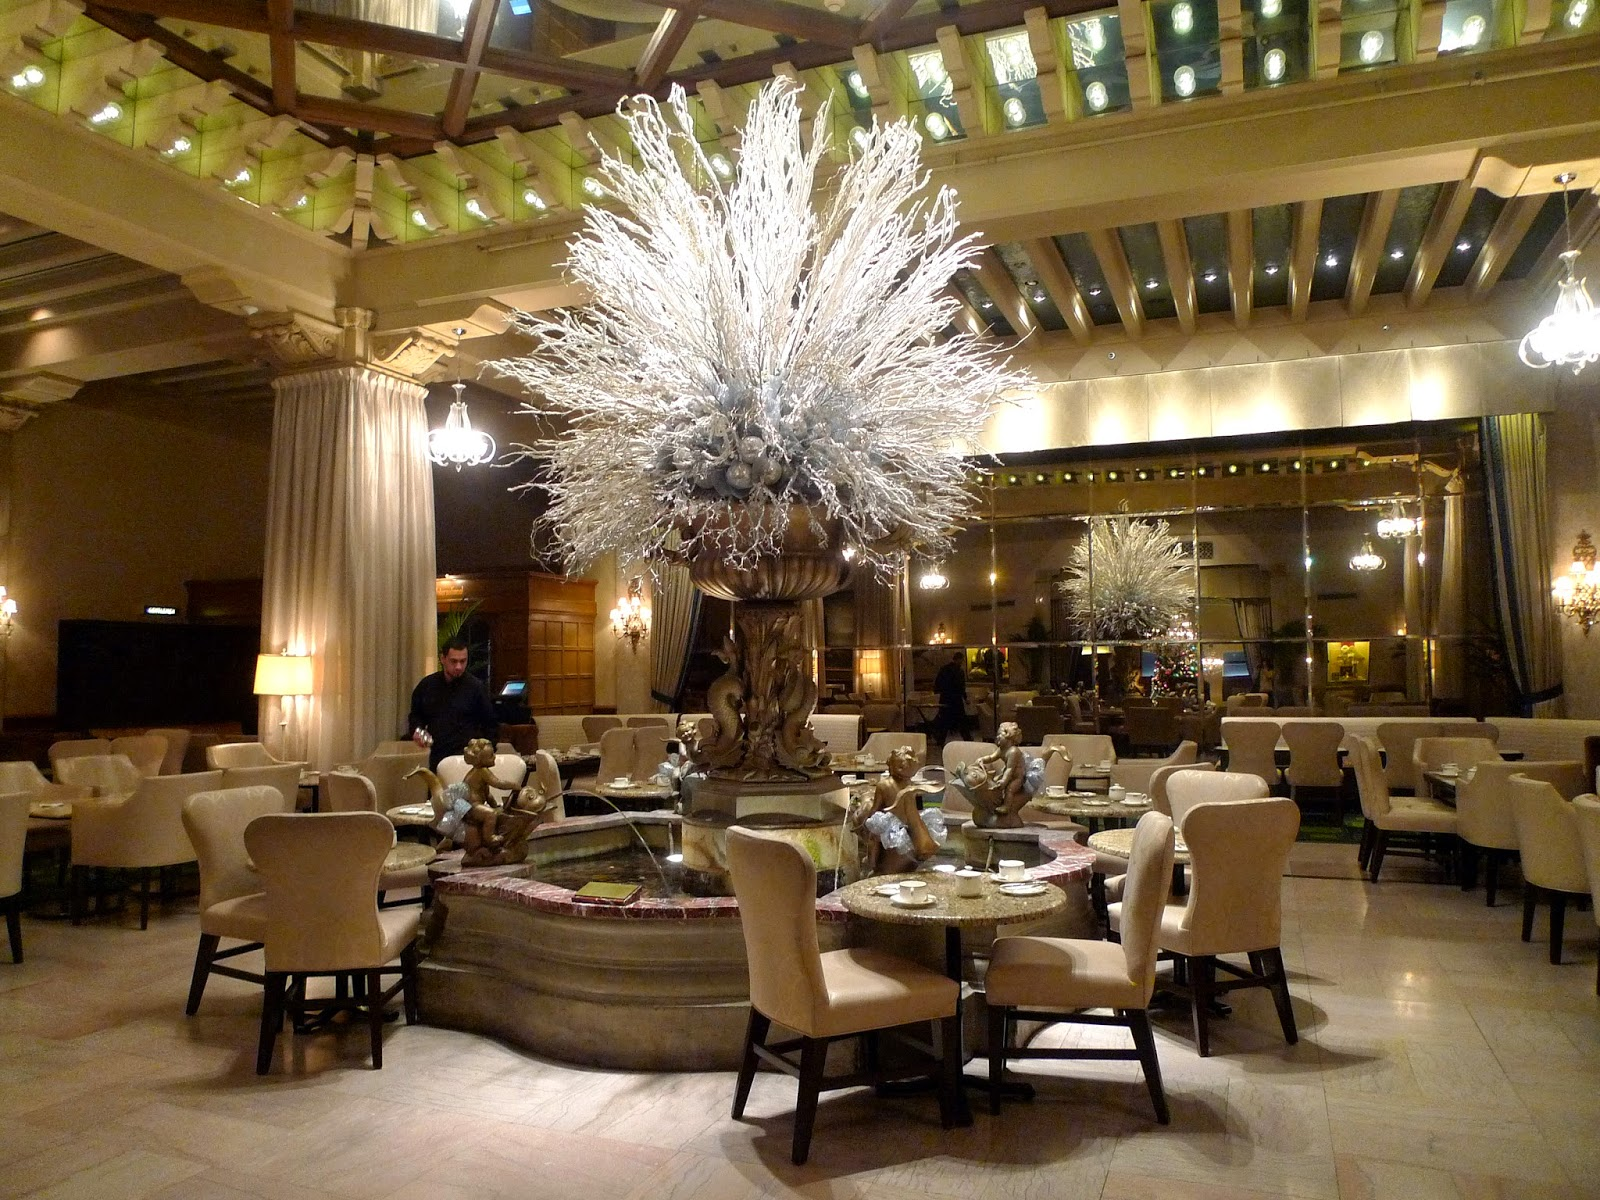 The Palm Court Famous For Their Delicious Afternoon Teas By Fountain With Live Harp Music It S Believed That Tossing Coins Into